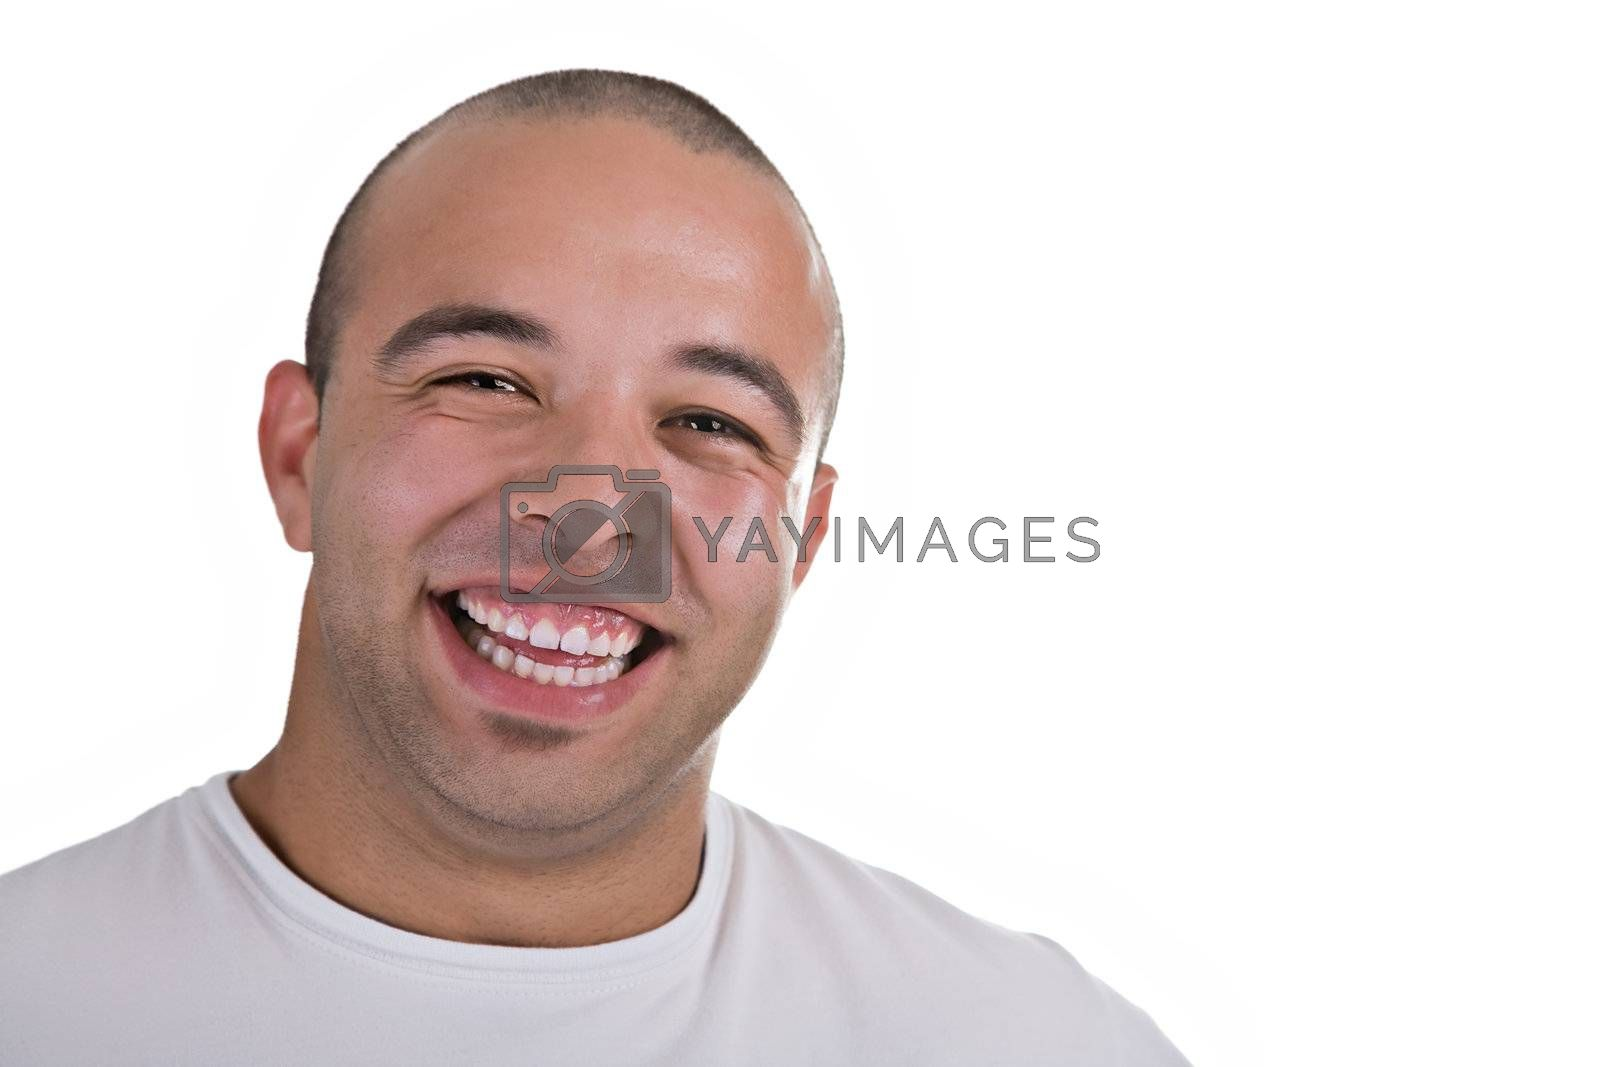 Casual portrait of a young man smiling, over white background.